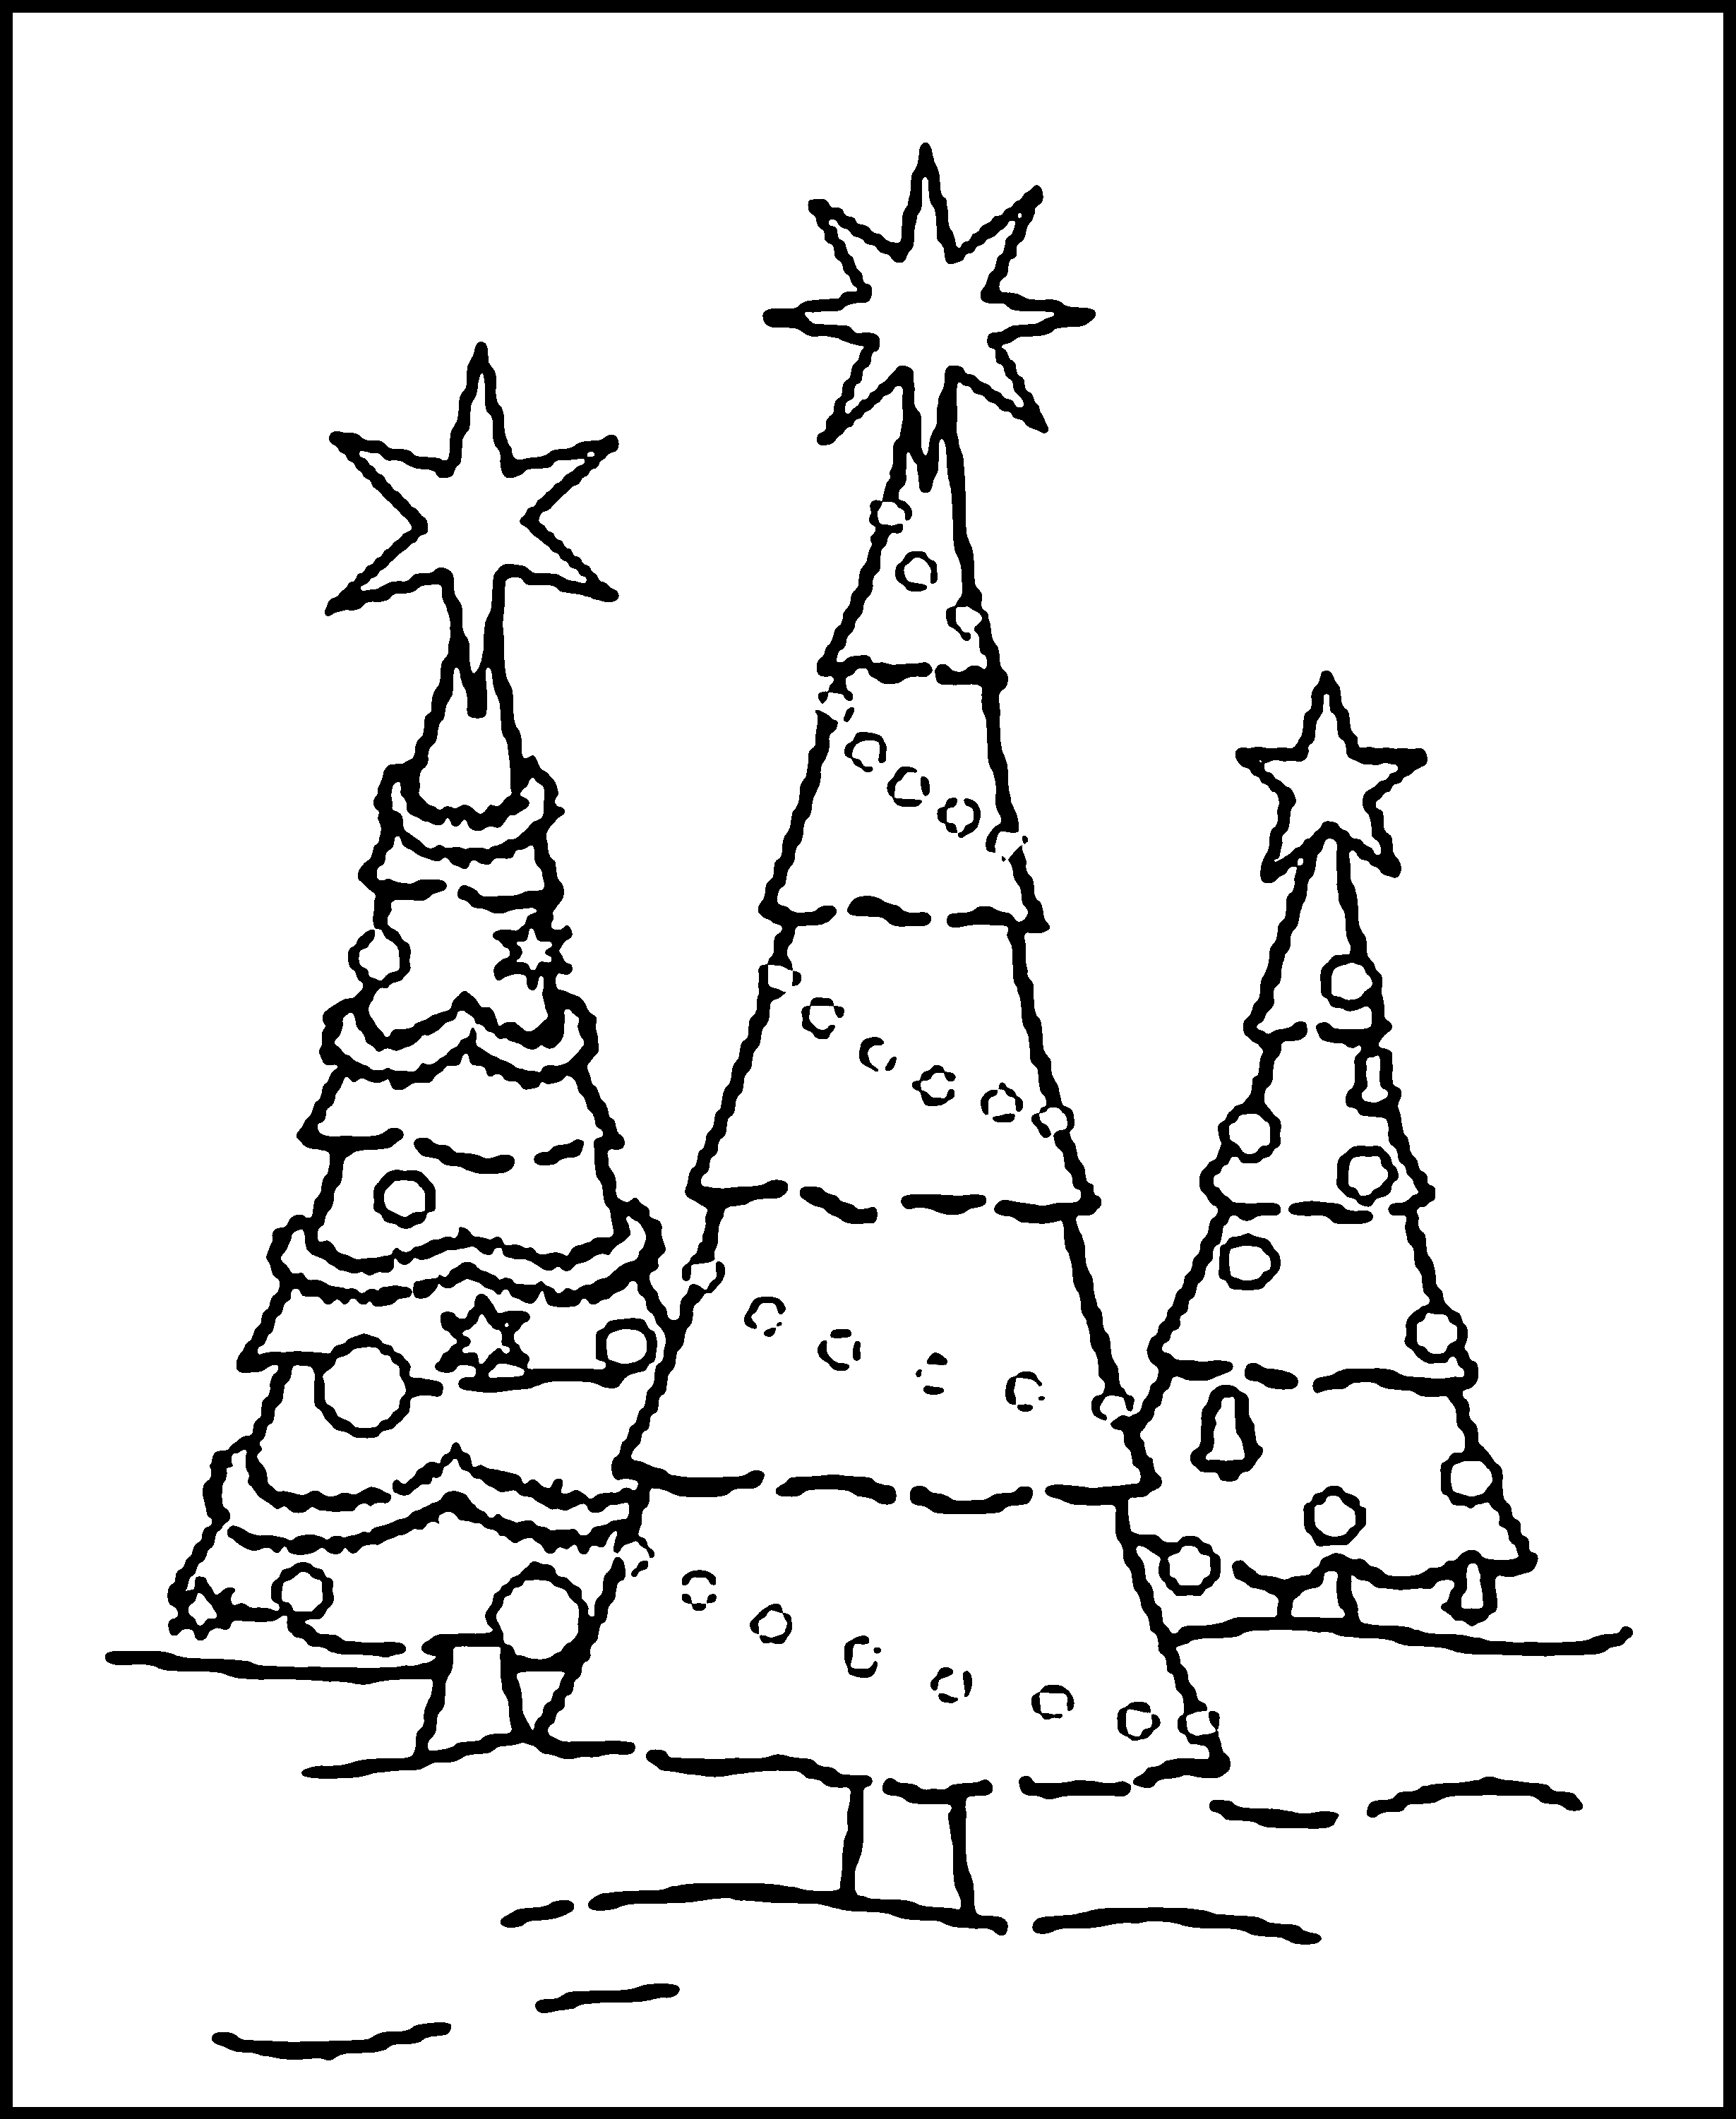 coloring book pages trees free coloring pages for download karyn lewis illustration book coloring trees pages